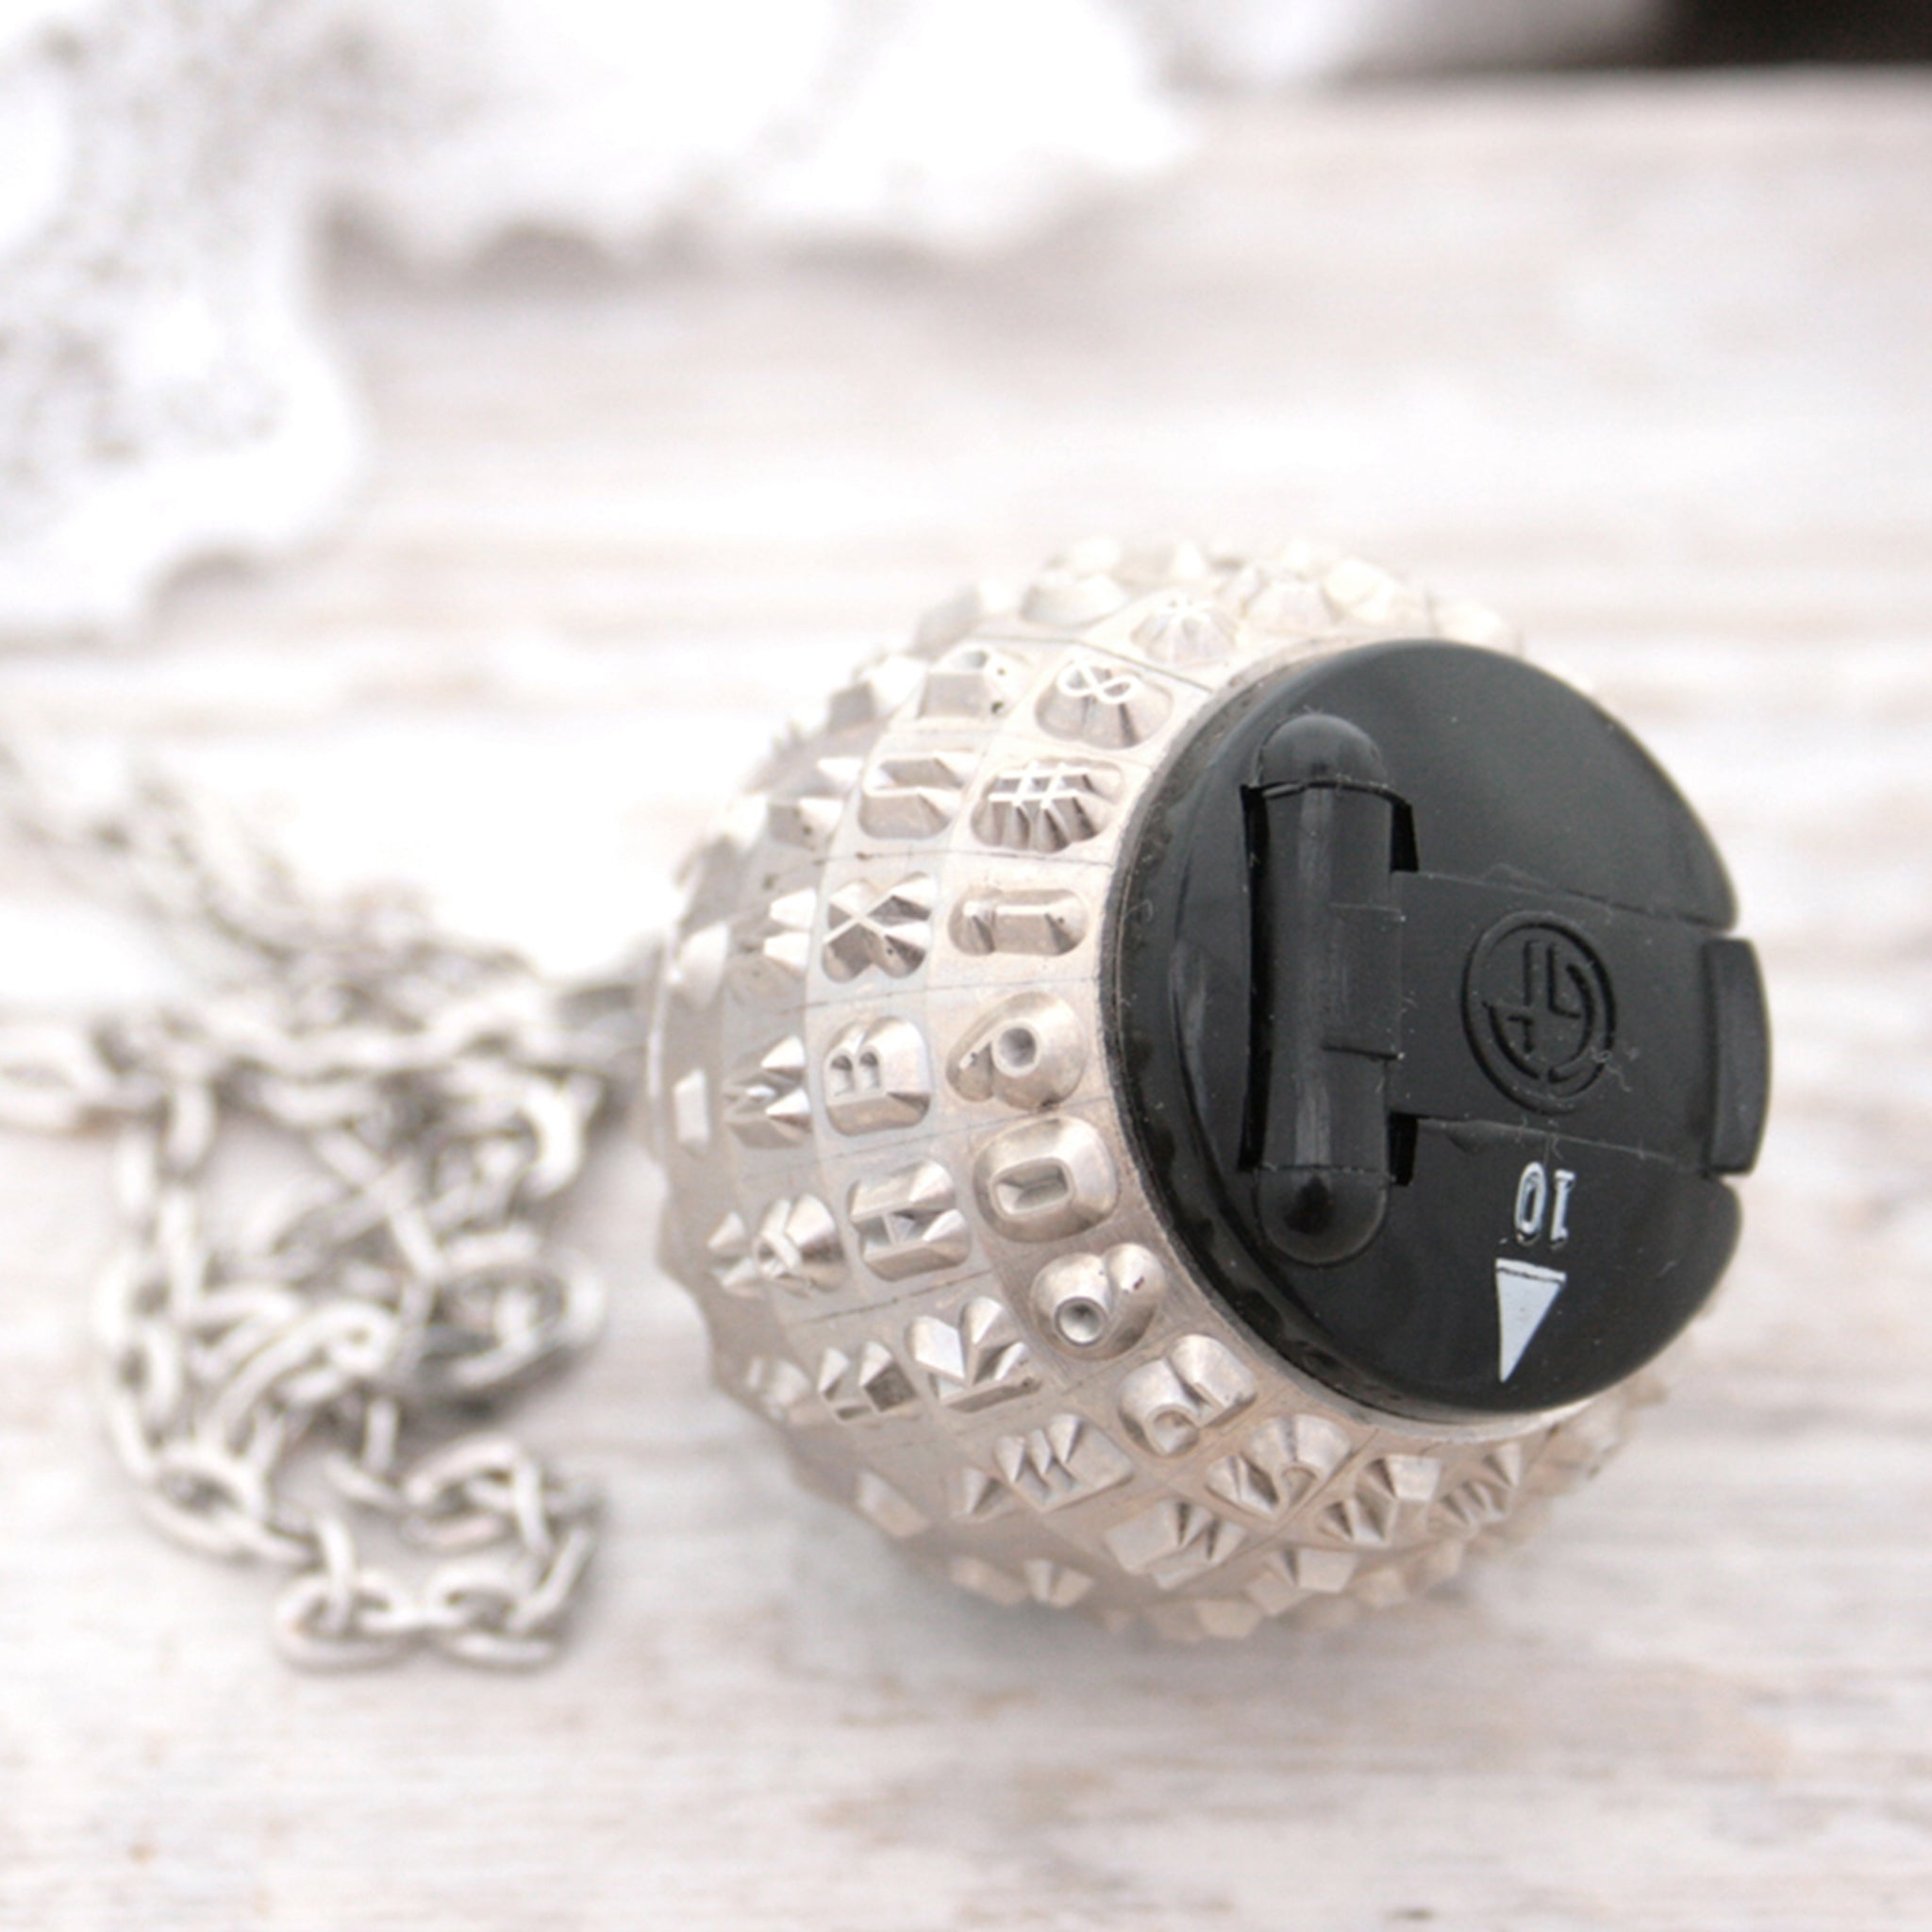 IBM Selectric typewriter font ball with large black and white bead turned into a necklace